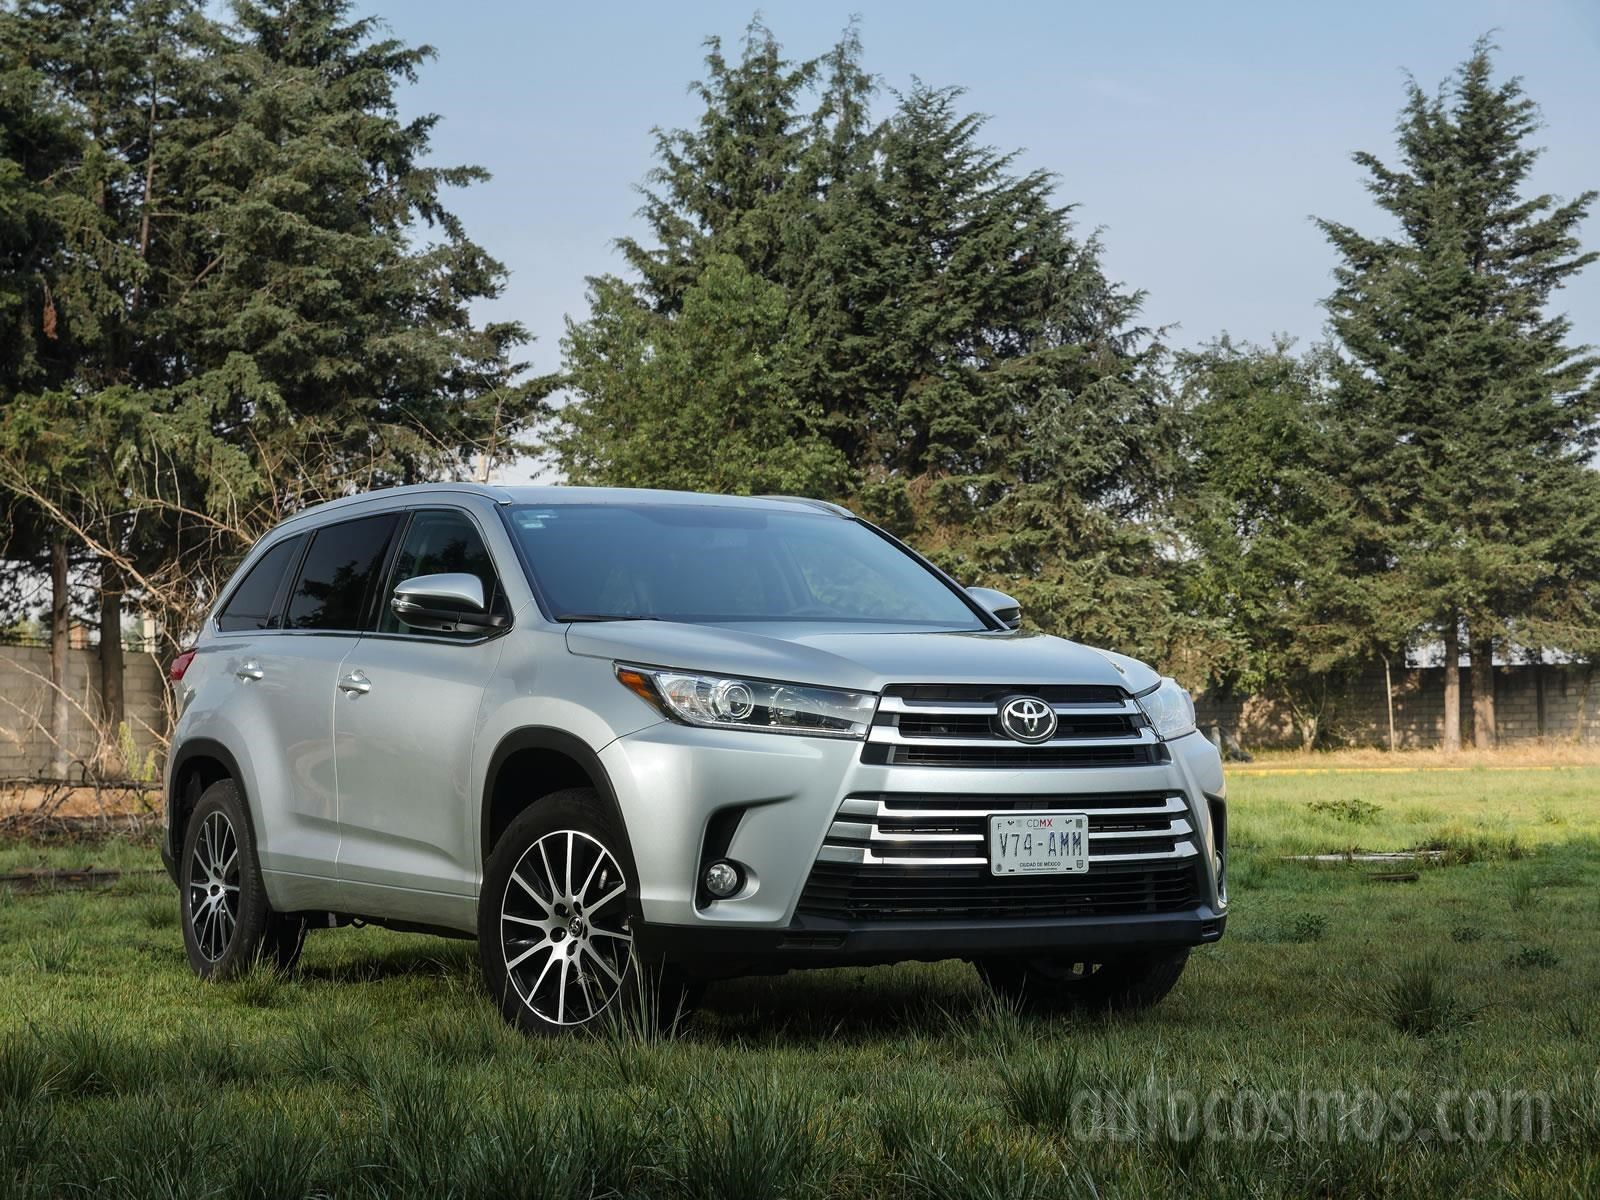 toyota highlander 2017 a prueba. Black Bedroom Furniture Sets. Home Design Ideas